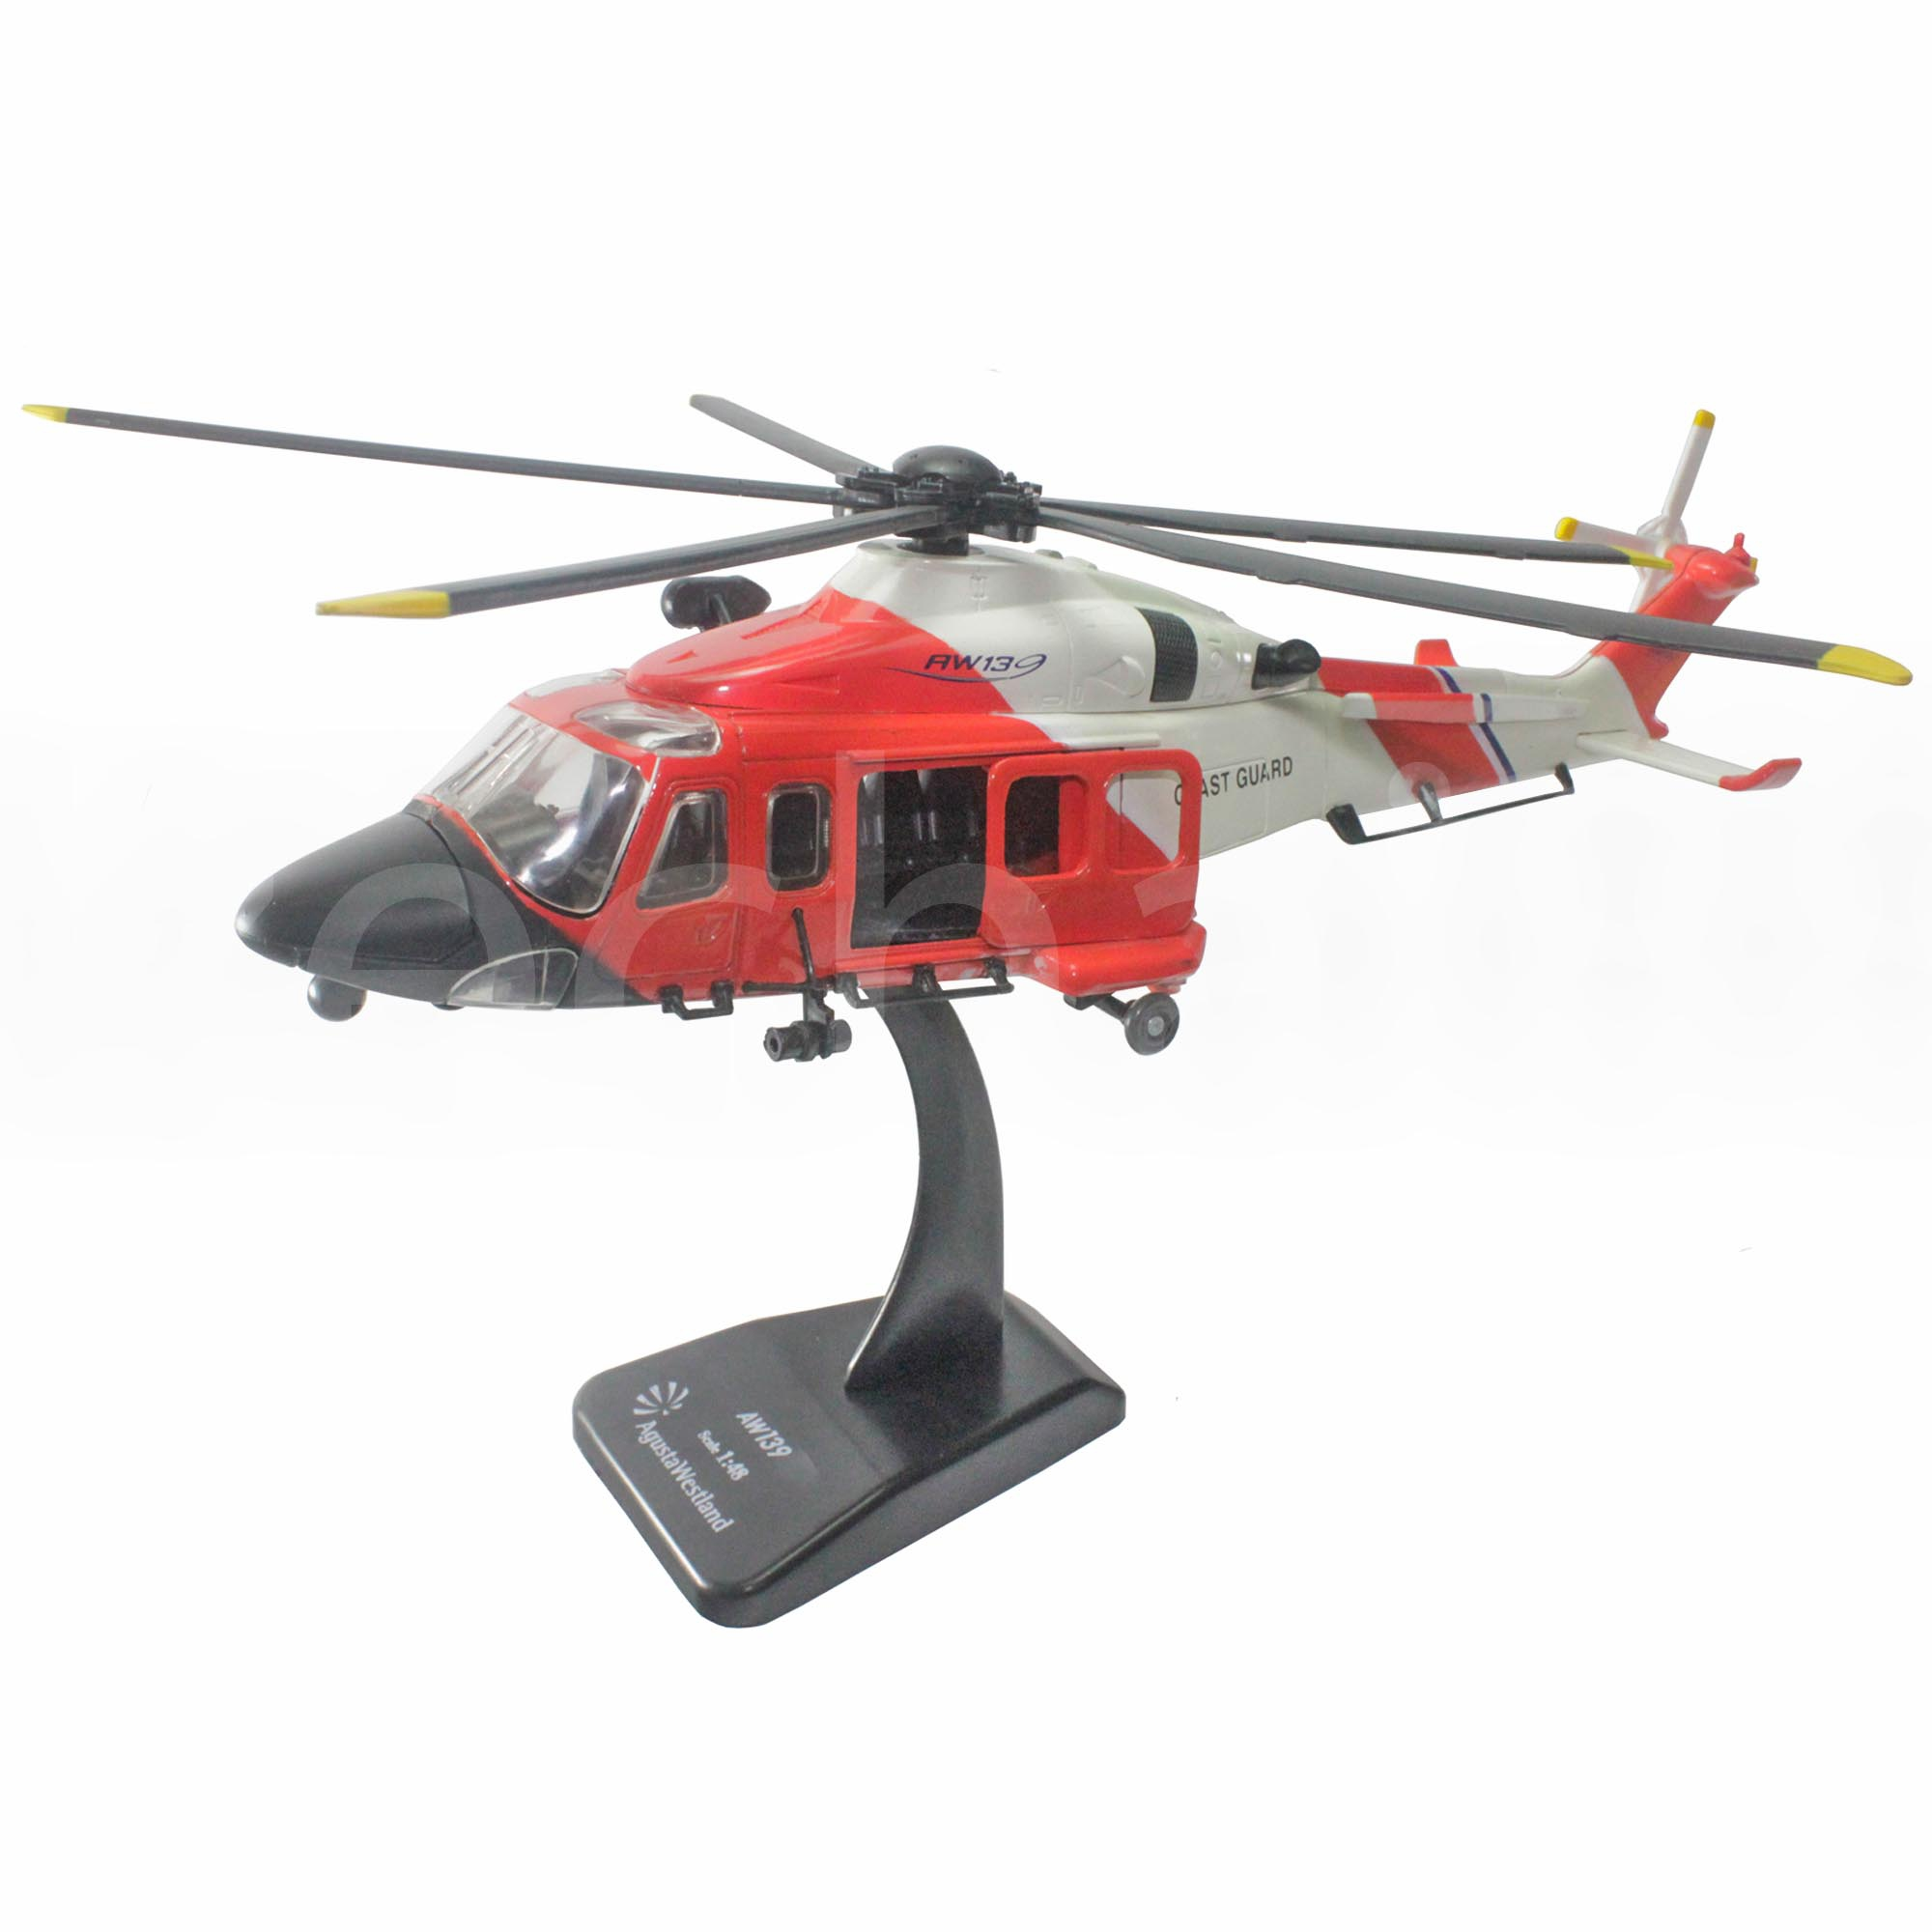 agusta aw139 helicopter with Newray 1 48 Die Cast Augusta Westland Aw139 Helicopter Red Color Model Gif Neo123 F209972 2007 01 Sale I on Karl Lagerfelds Fashion Copter Arrives moreover Agustawestland Unveils New Aw169 Vip Interior in addition 196 Agustawestland Aw139 together with Agustawestland Helicopter also Kaan Air Orders One Aw139 And One Aw189.